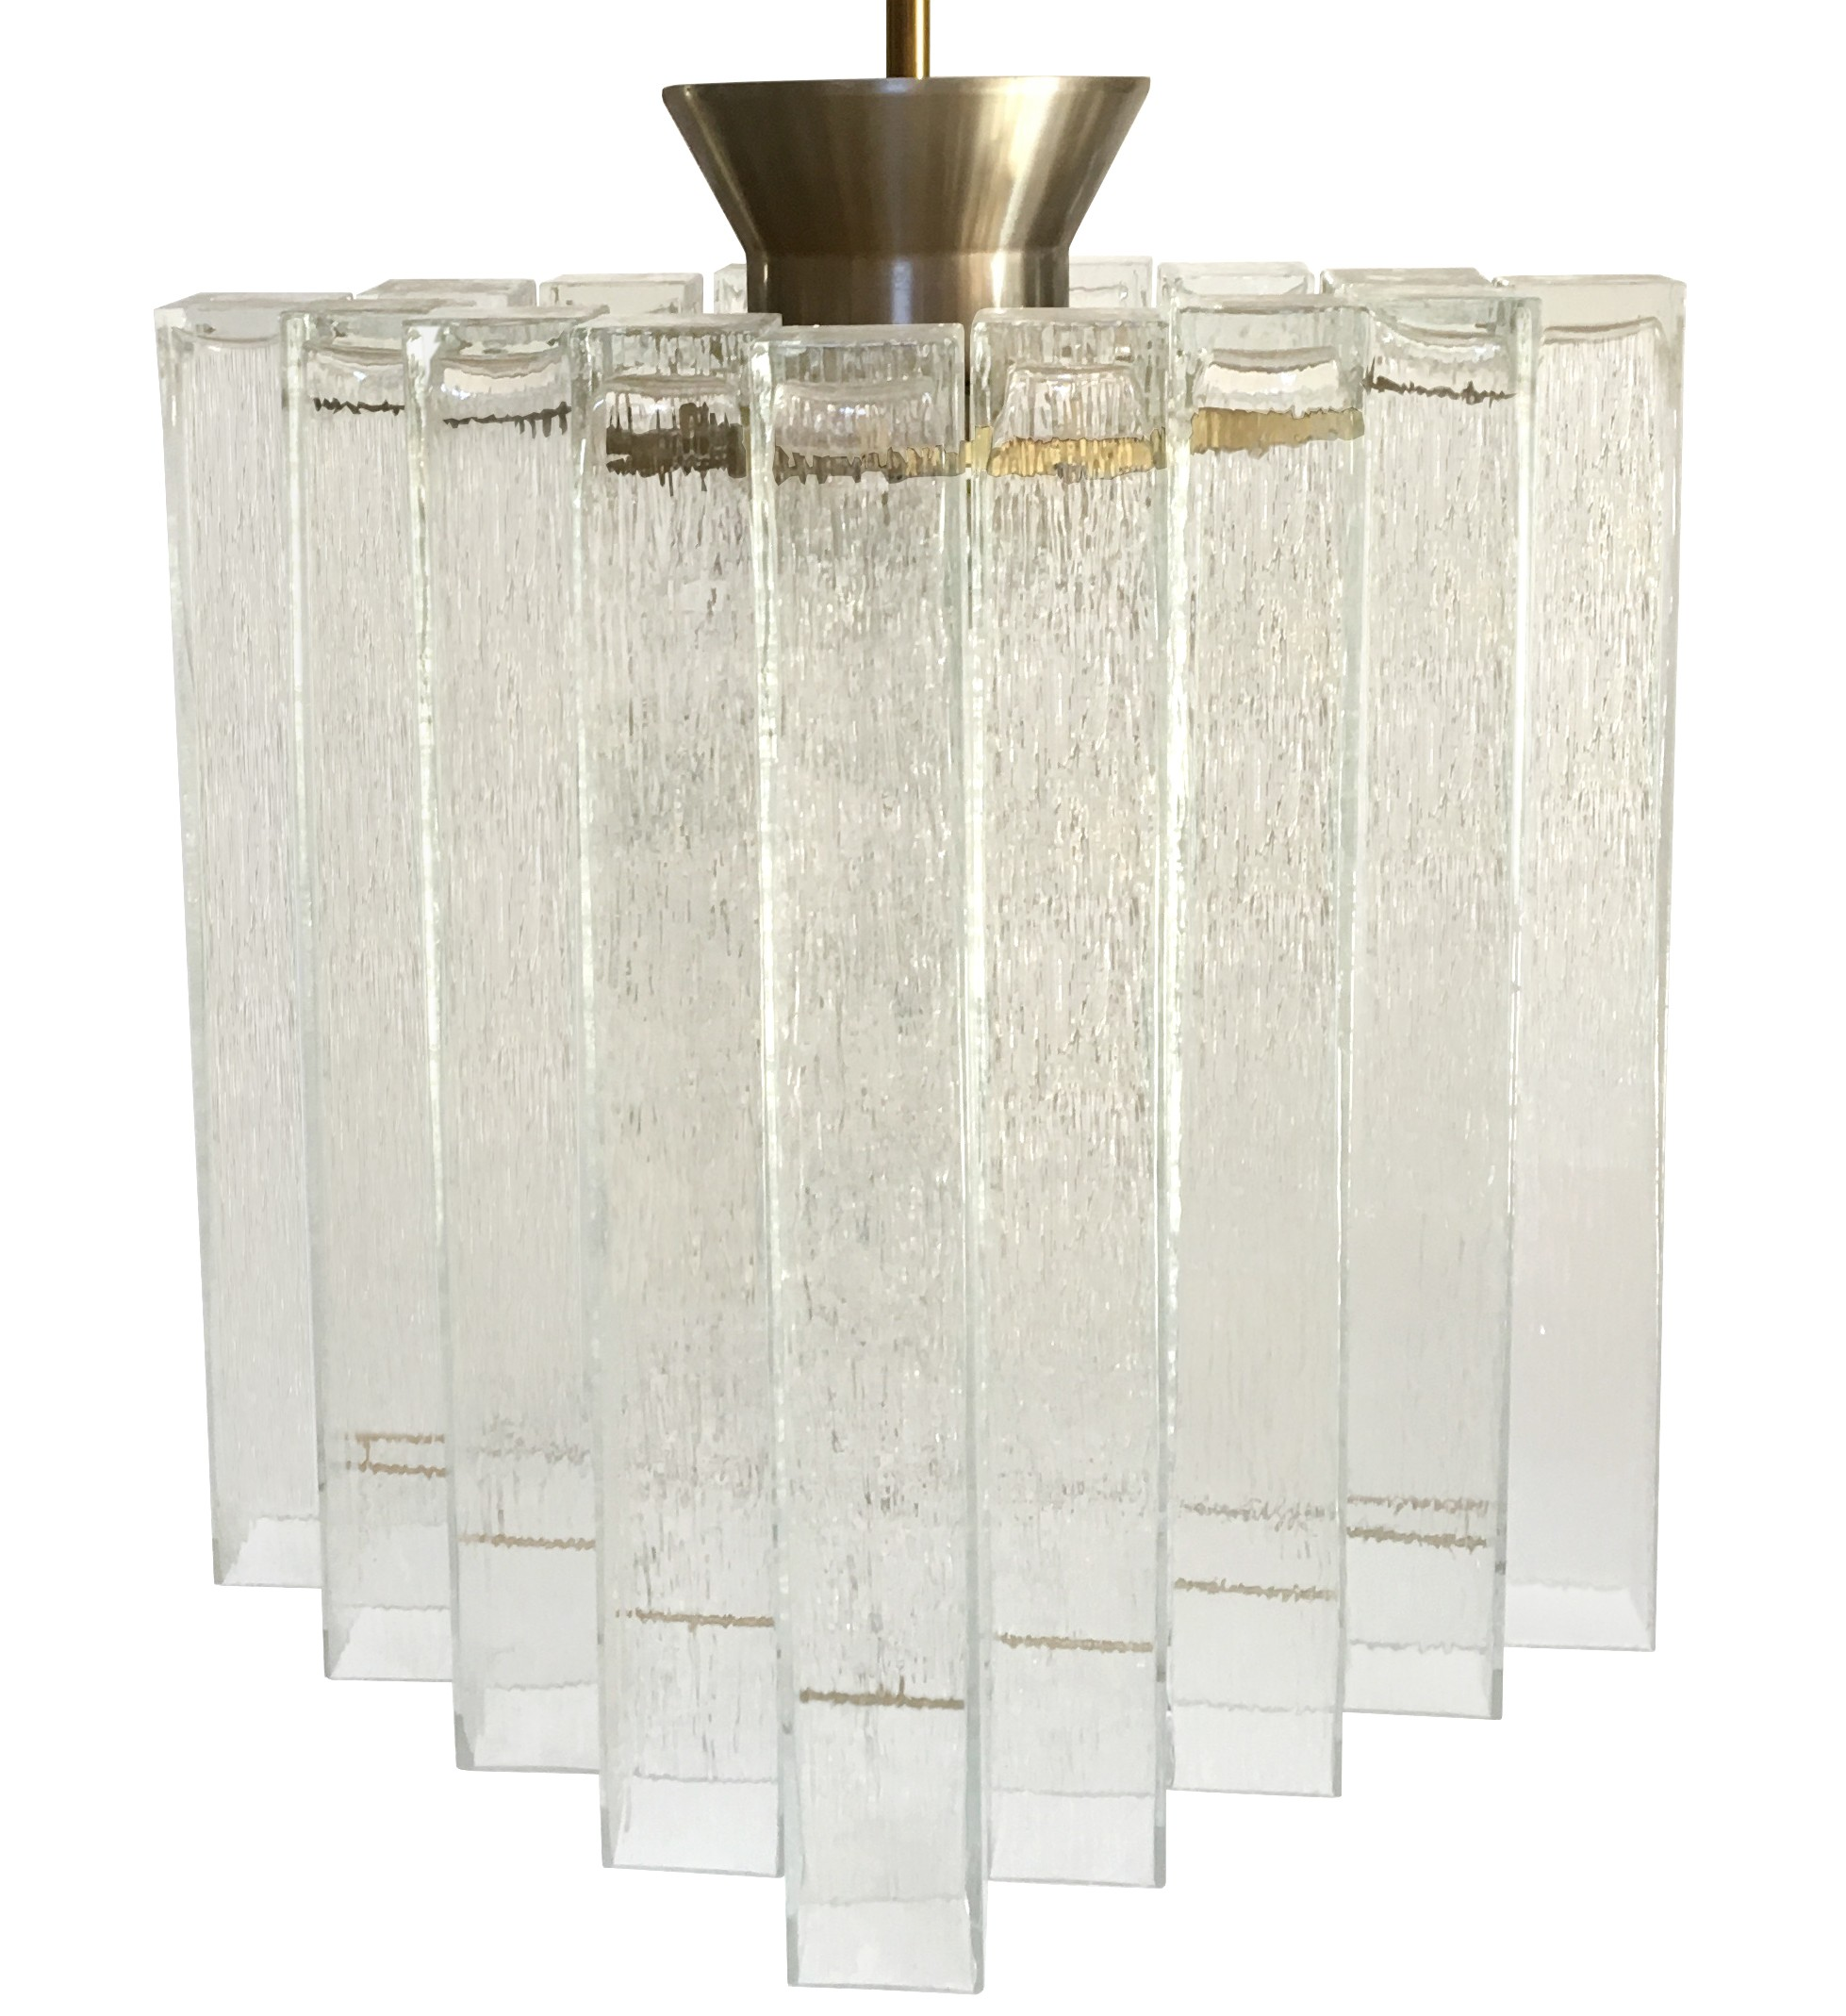 German Textural Glass Chandelier by Doria (2 Available)